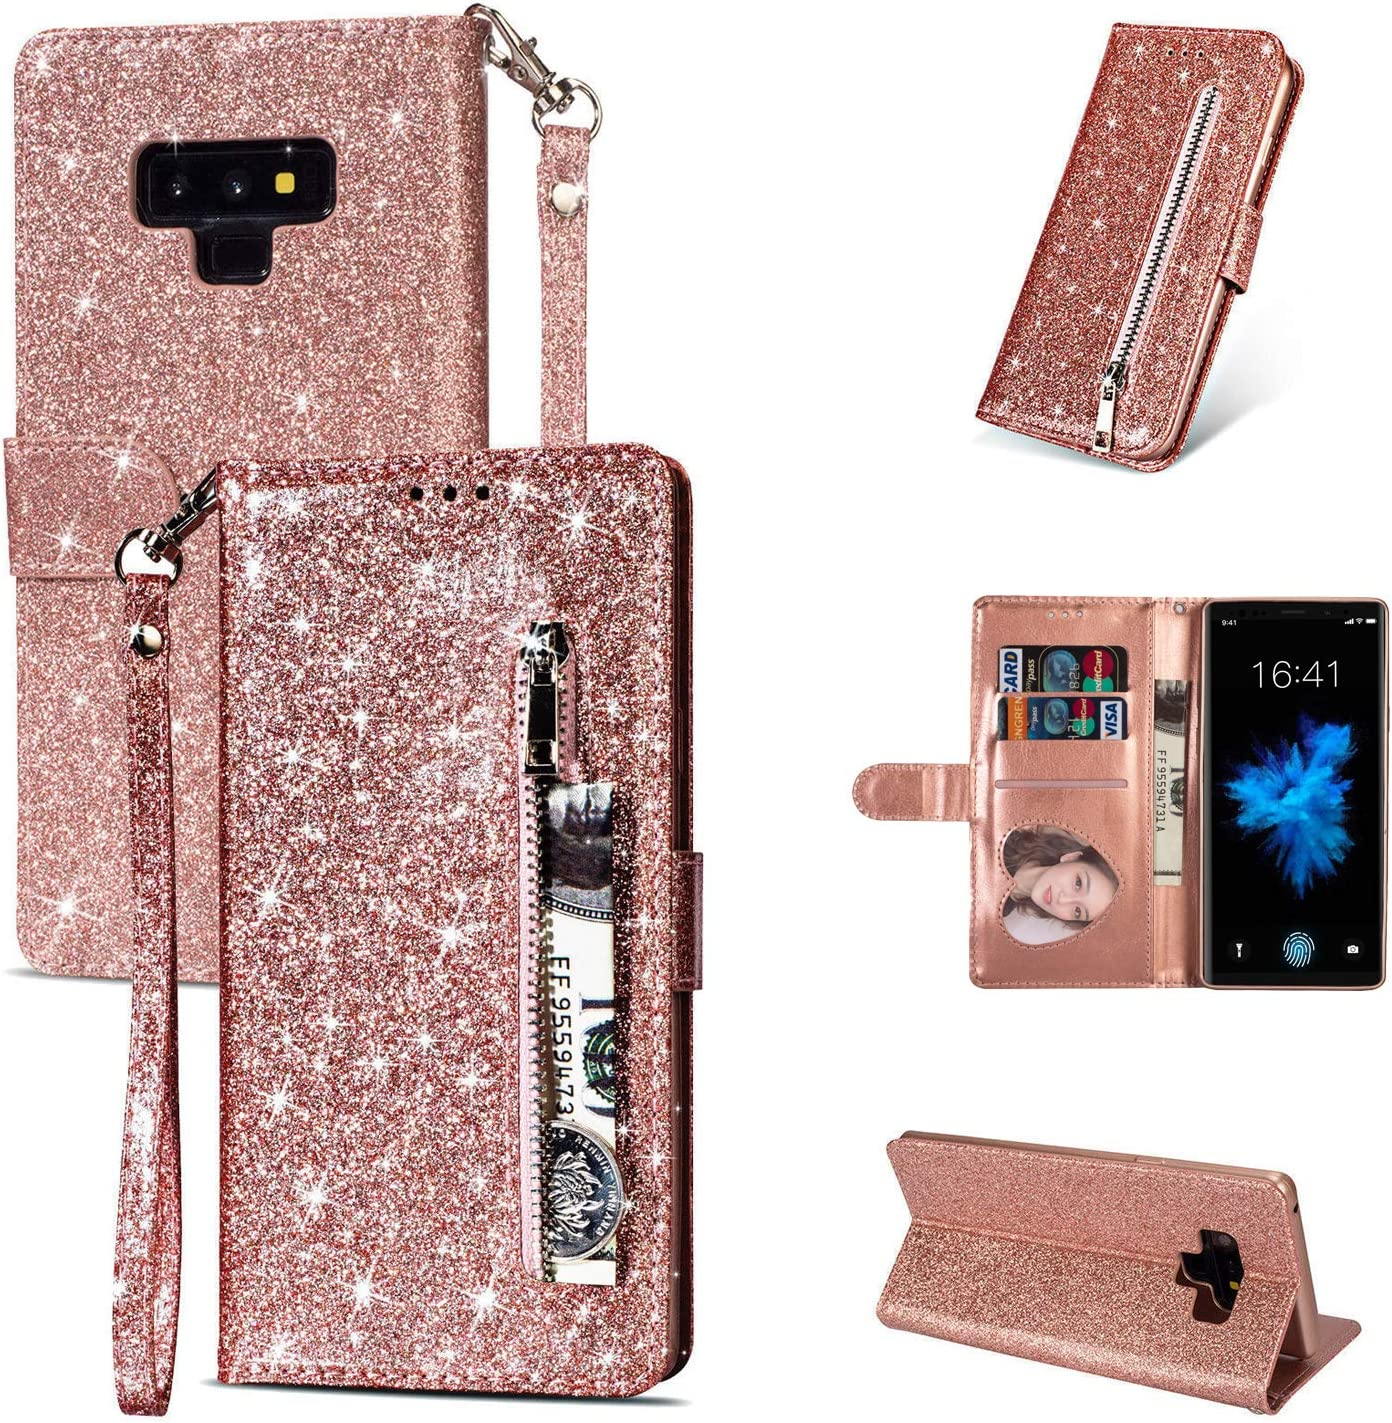 ZCDAYE Zipper Wallet Case for Samsung Galaxy Note 8,Magnetic Bling Glitter Sparkly PU Leather Folio Flip Case Cover with Card Slots Kickstand for Galaxy Note 8 - Rose Gold